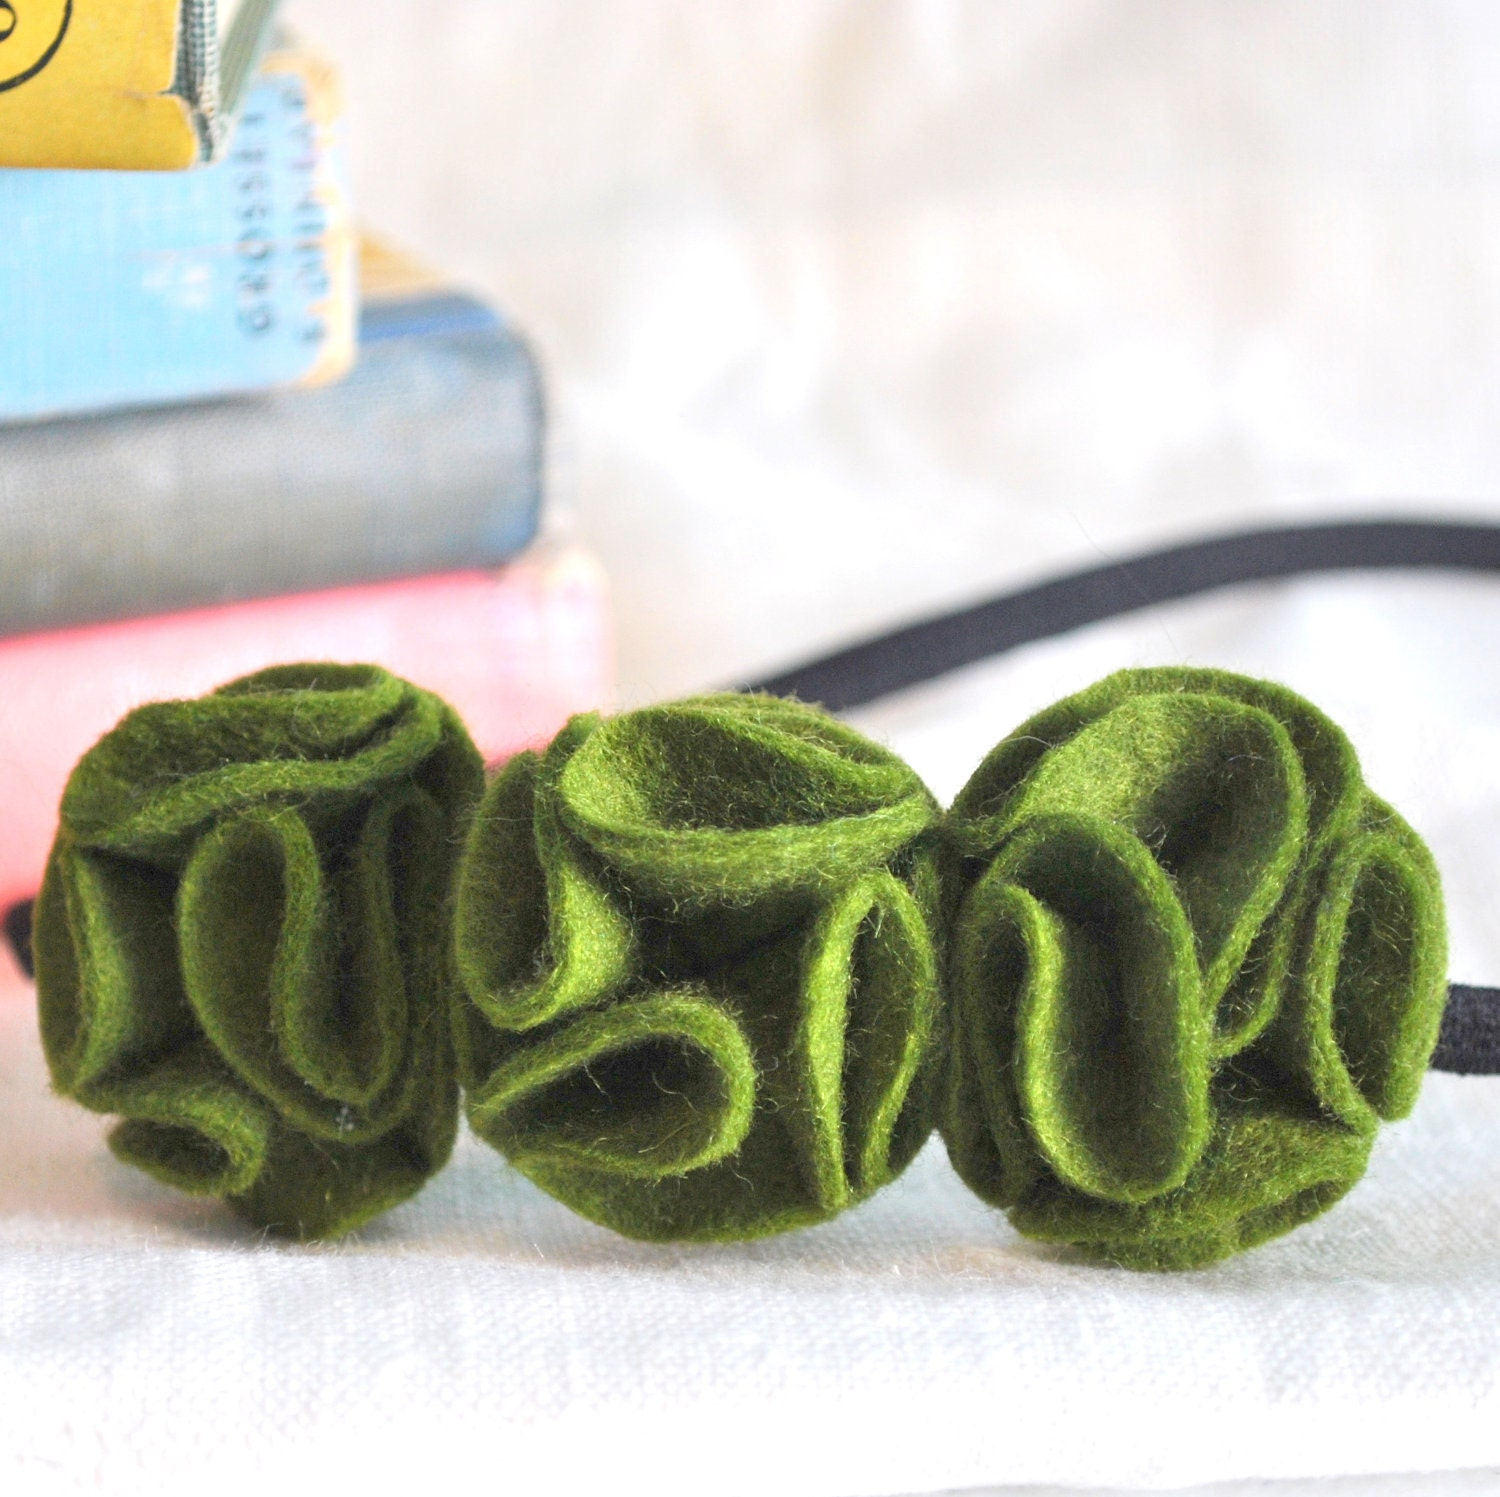 Green Flower Ruffle Headband - Moss Wool Felt - Olive Green Floral Statement Headband - FoldingChairDesigns